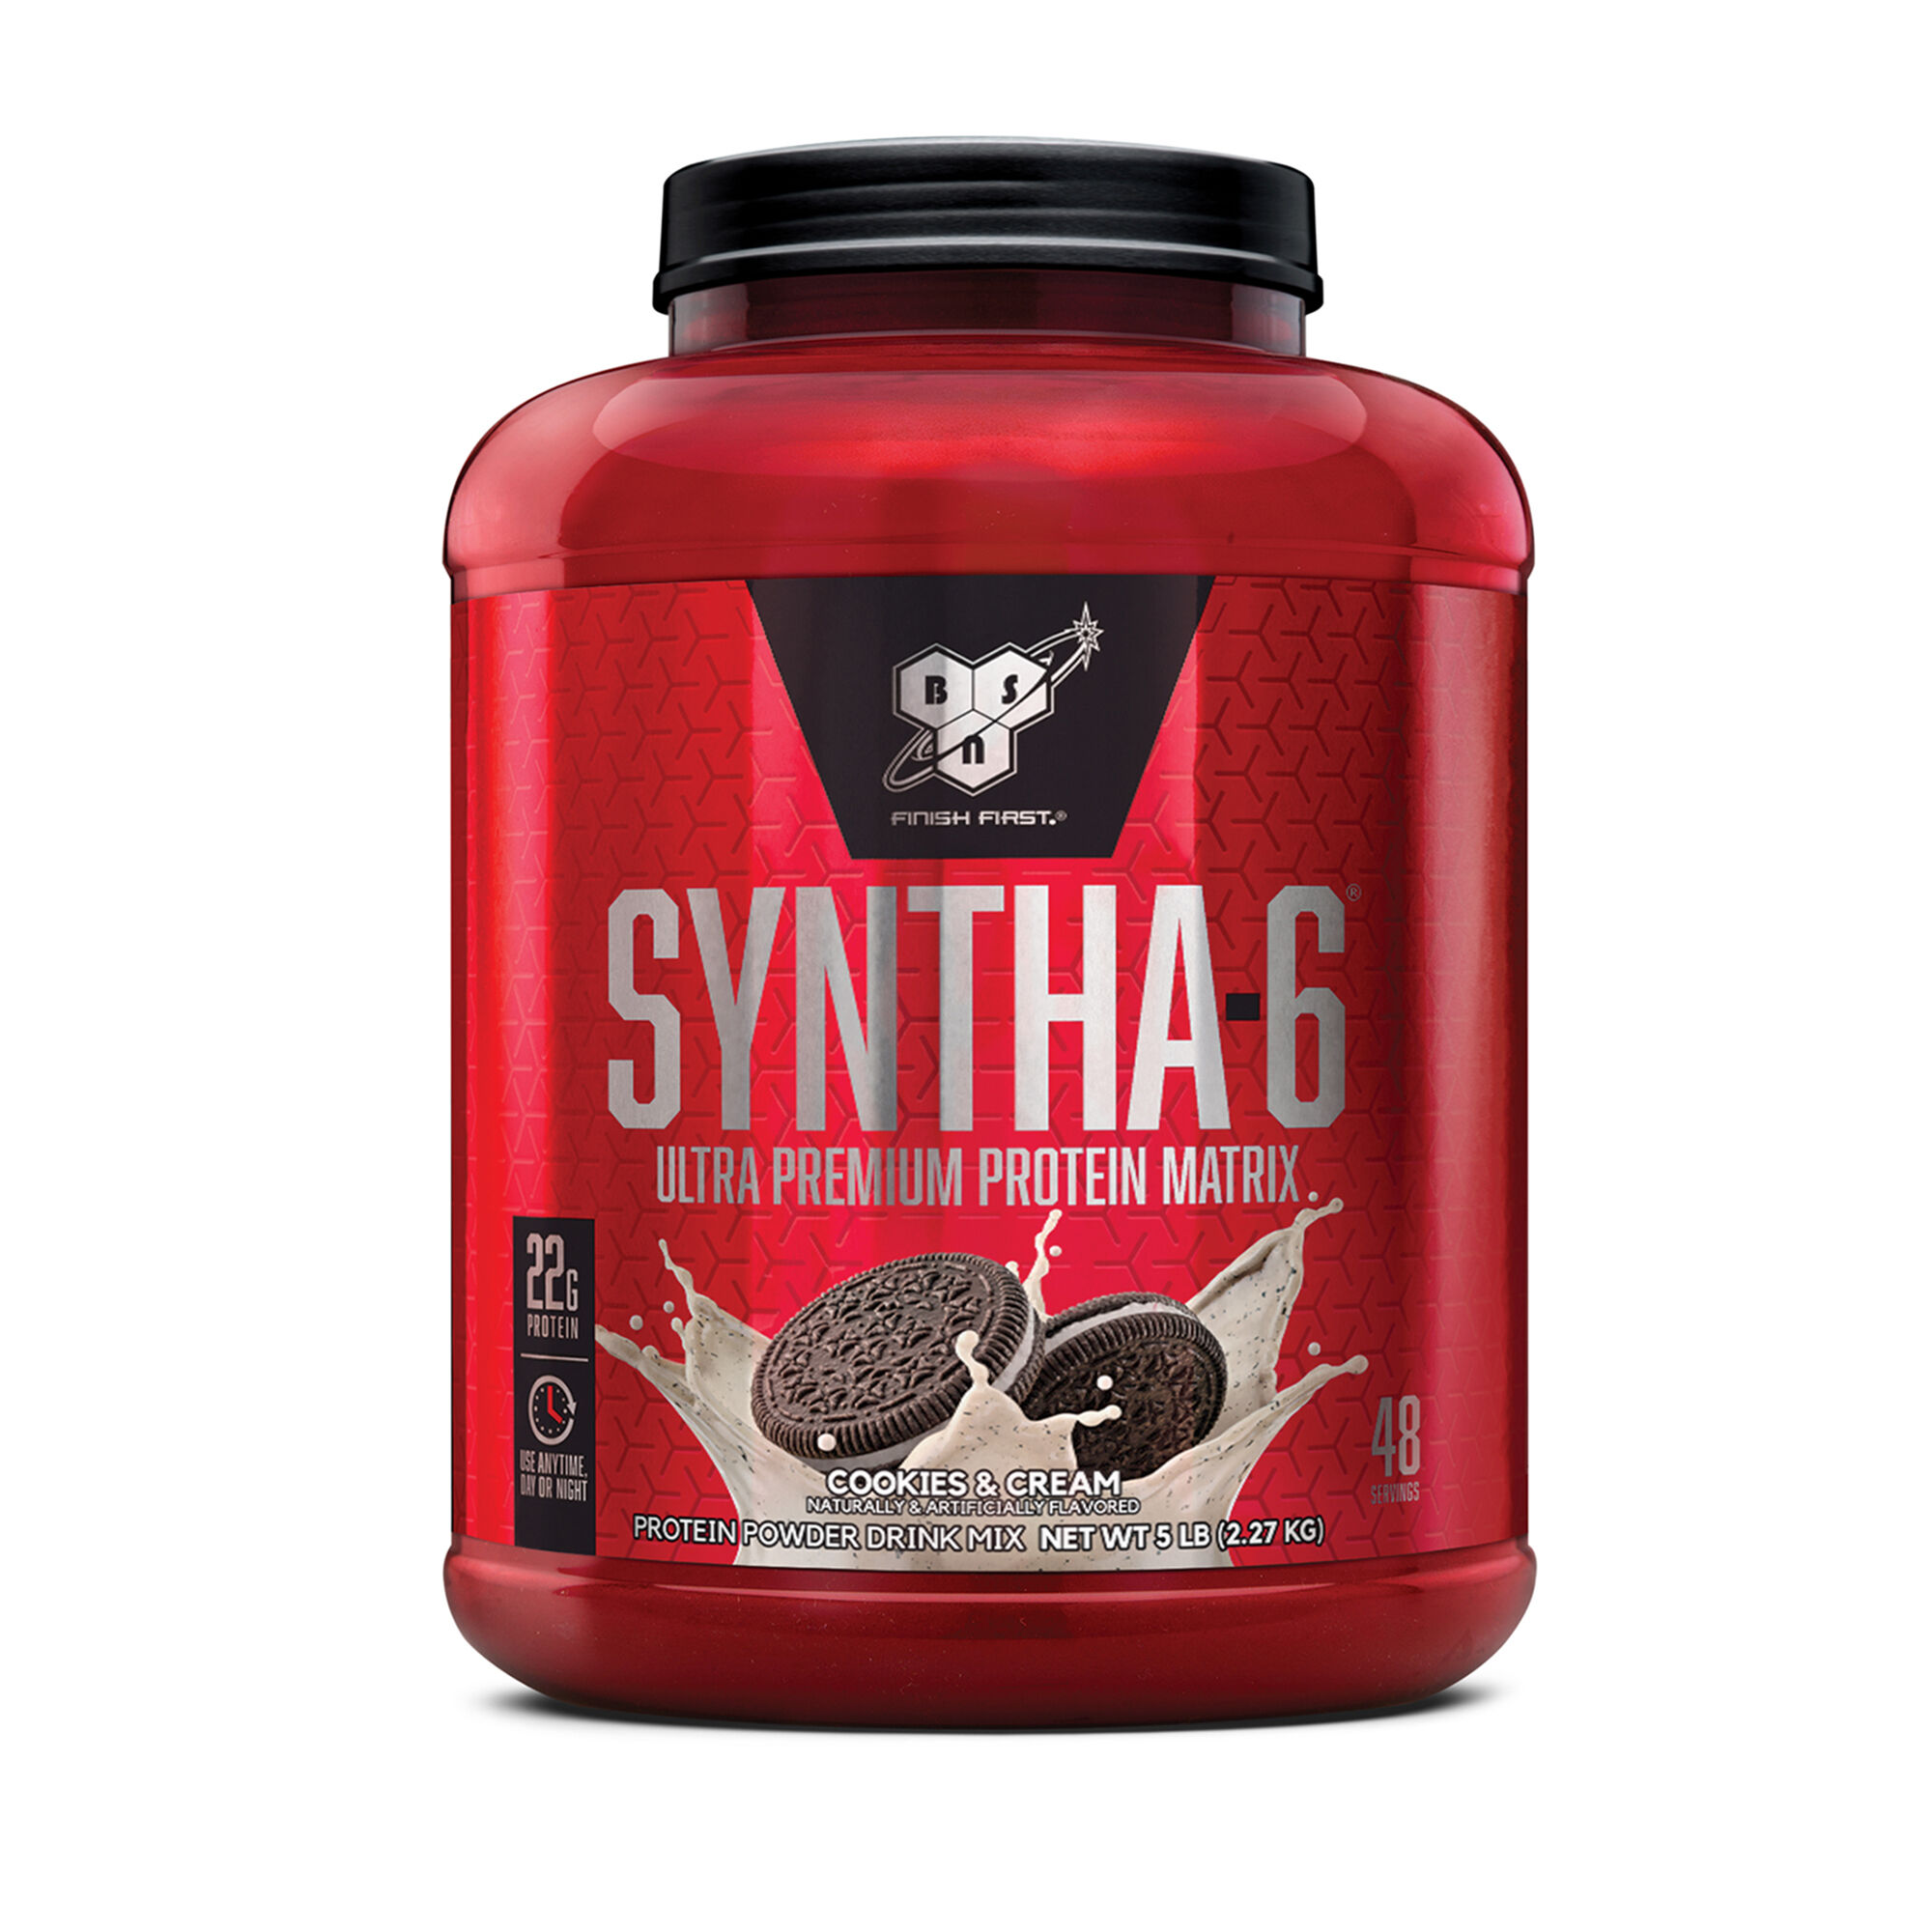 Bsn Syntha 6 Cookies And Cream Gnc